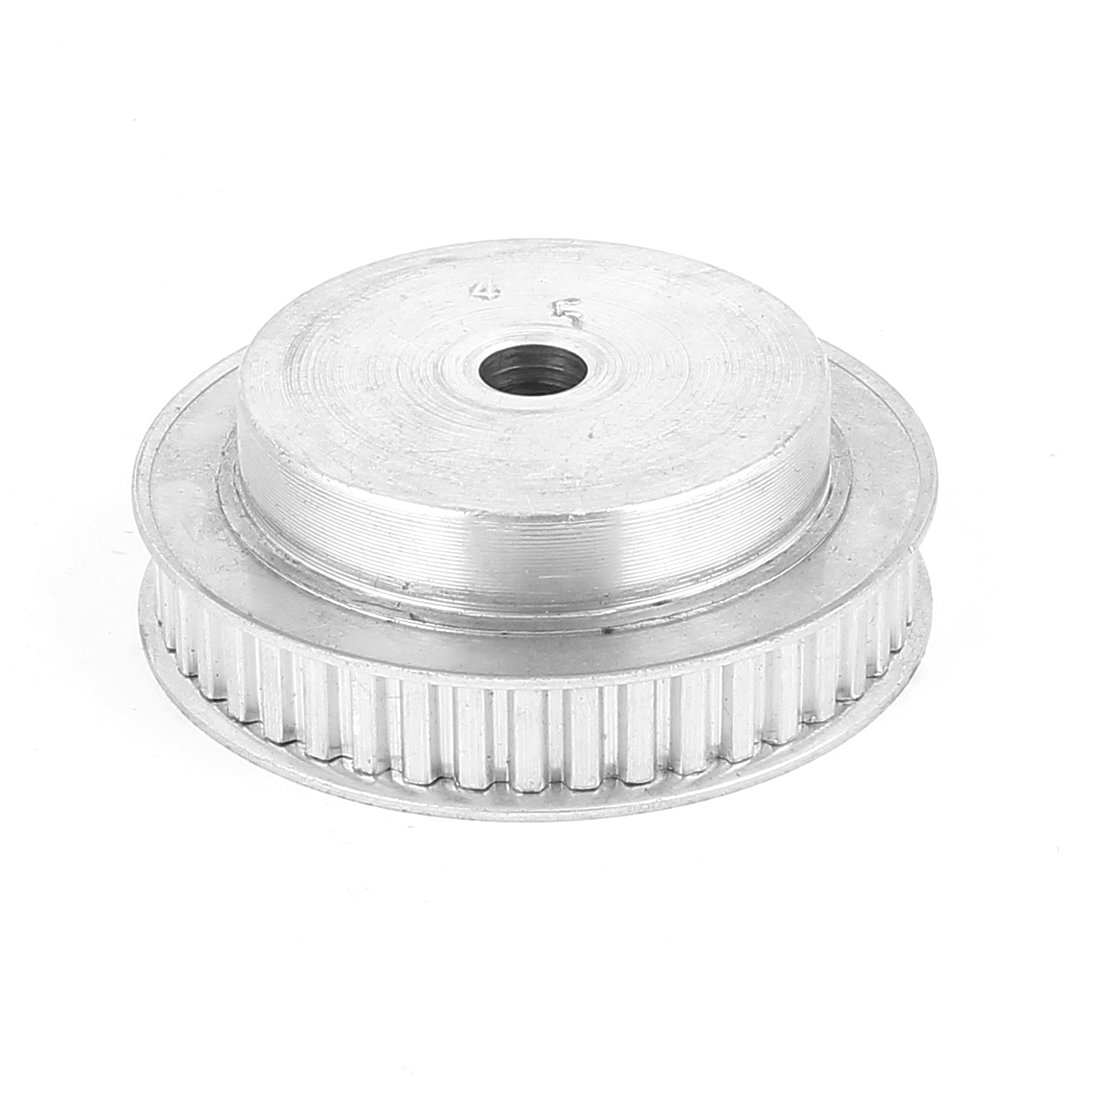 uxcell Aluminum Alloy XL45 45 Teeth 9.5mm Bore Dia Double Flanged Motor Drive Synchronous Timing Pulley